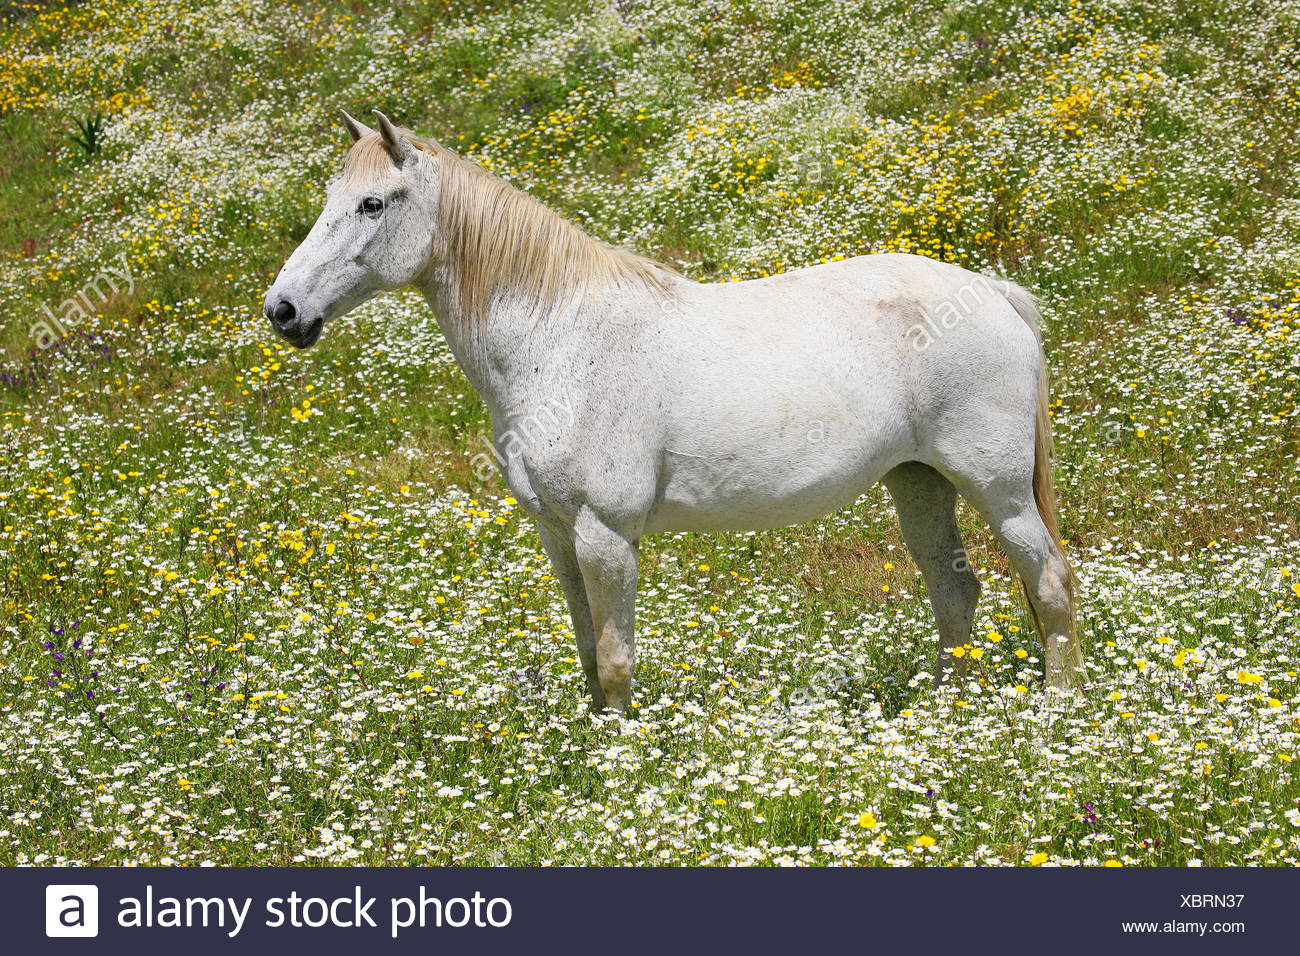 Lusitanian horse (Equus przewalskii f. caballus), white horse standing in a flower meadow, Portugal - Stock Image